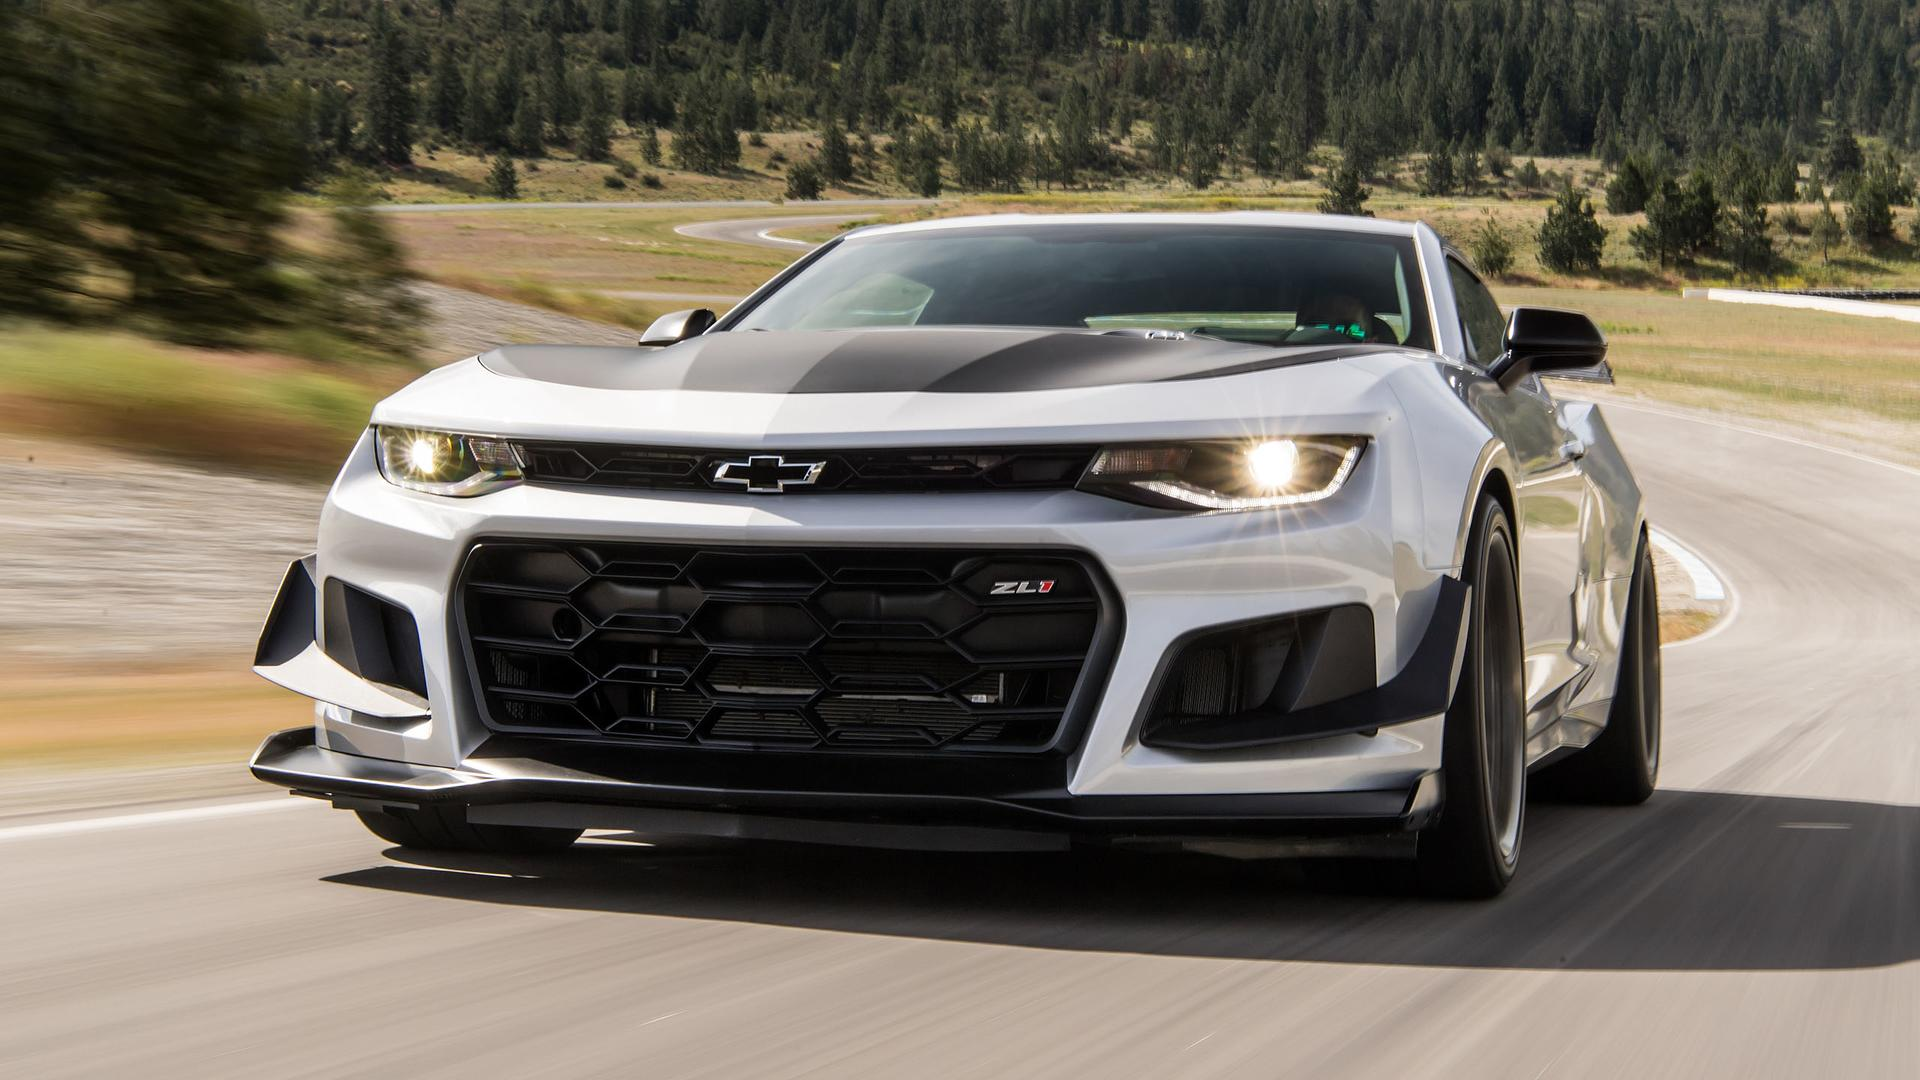 2018 chevy camaro zl1 1le not allowed in europe. Black Bedroom Furniture Sets. Home Design Ideas